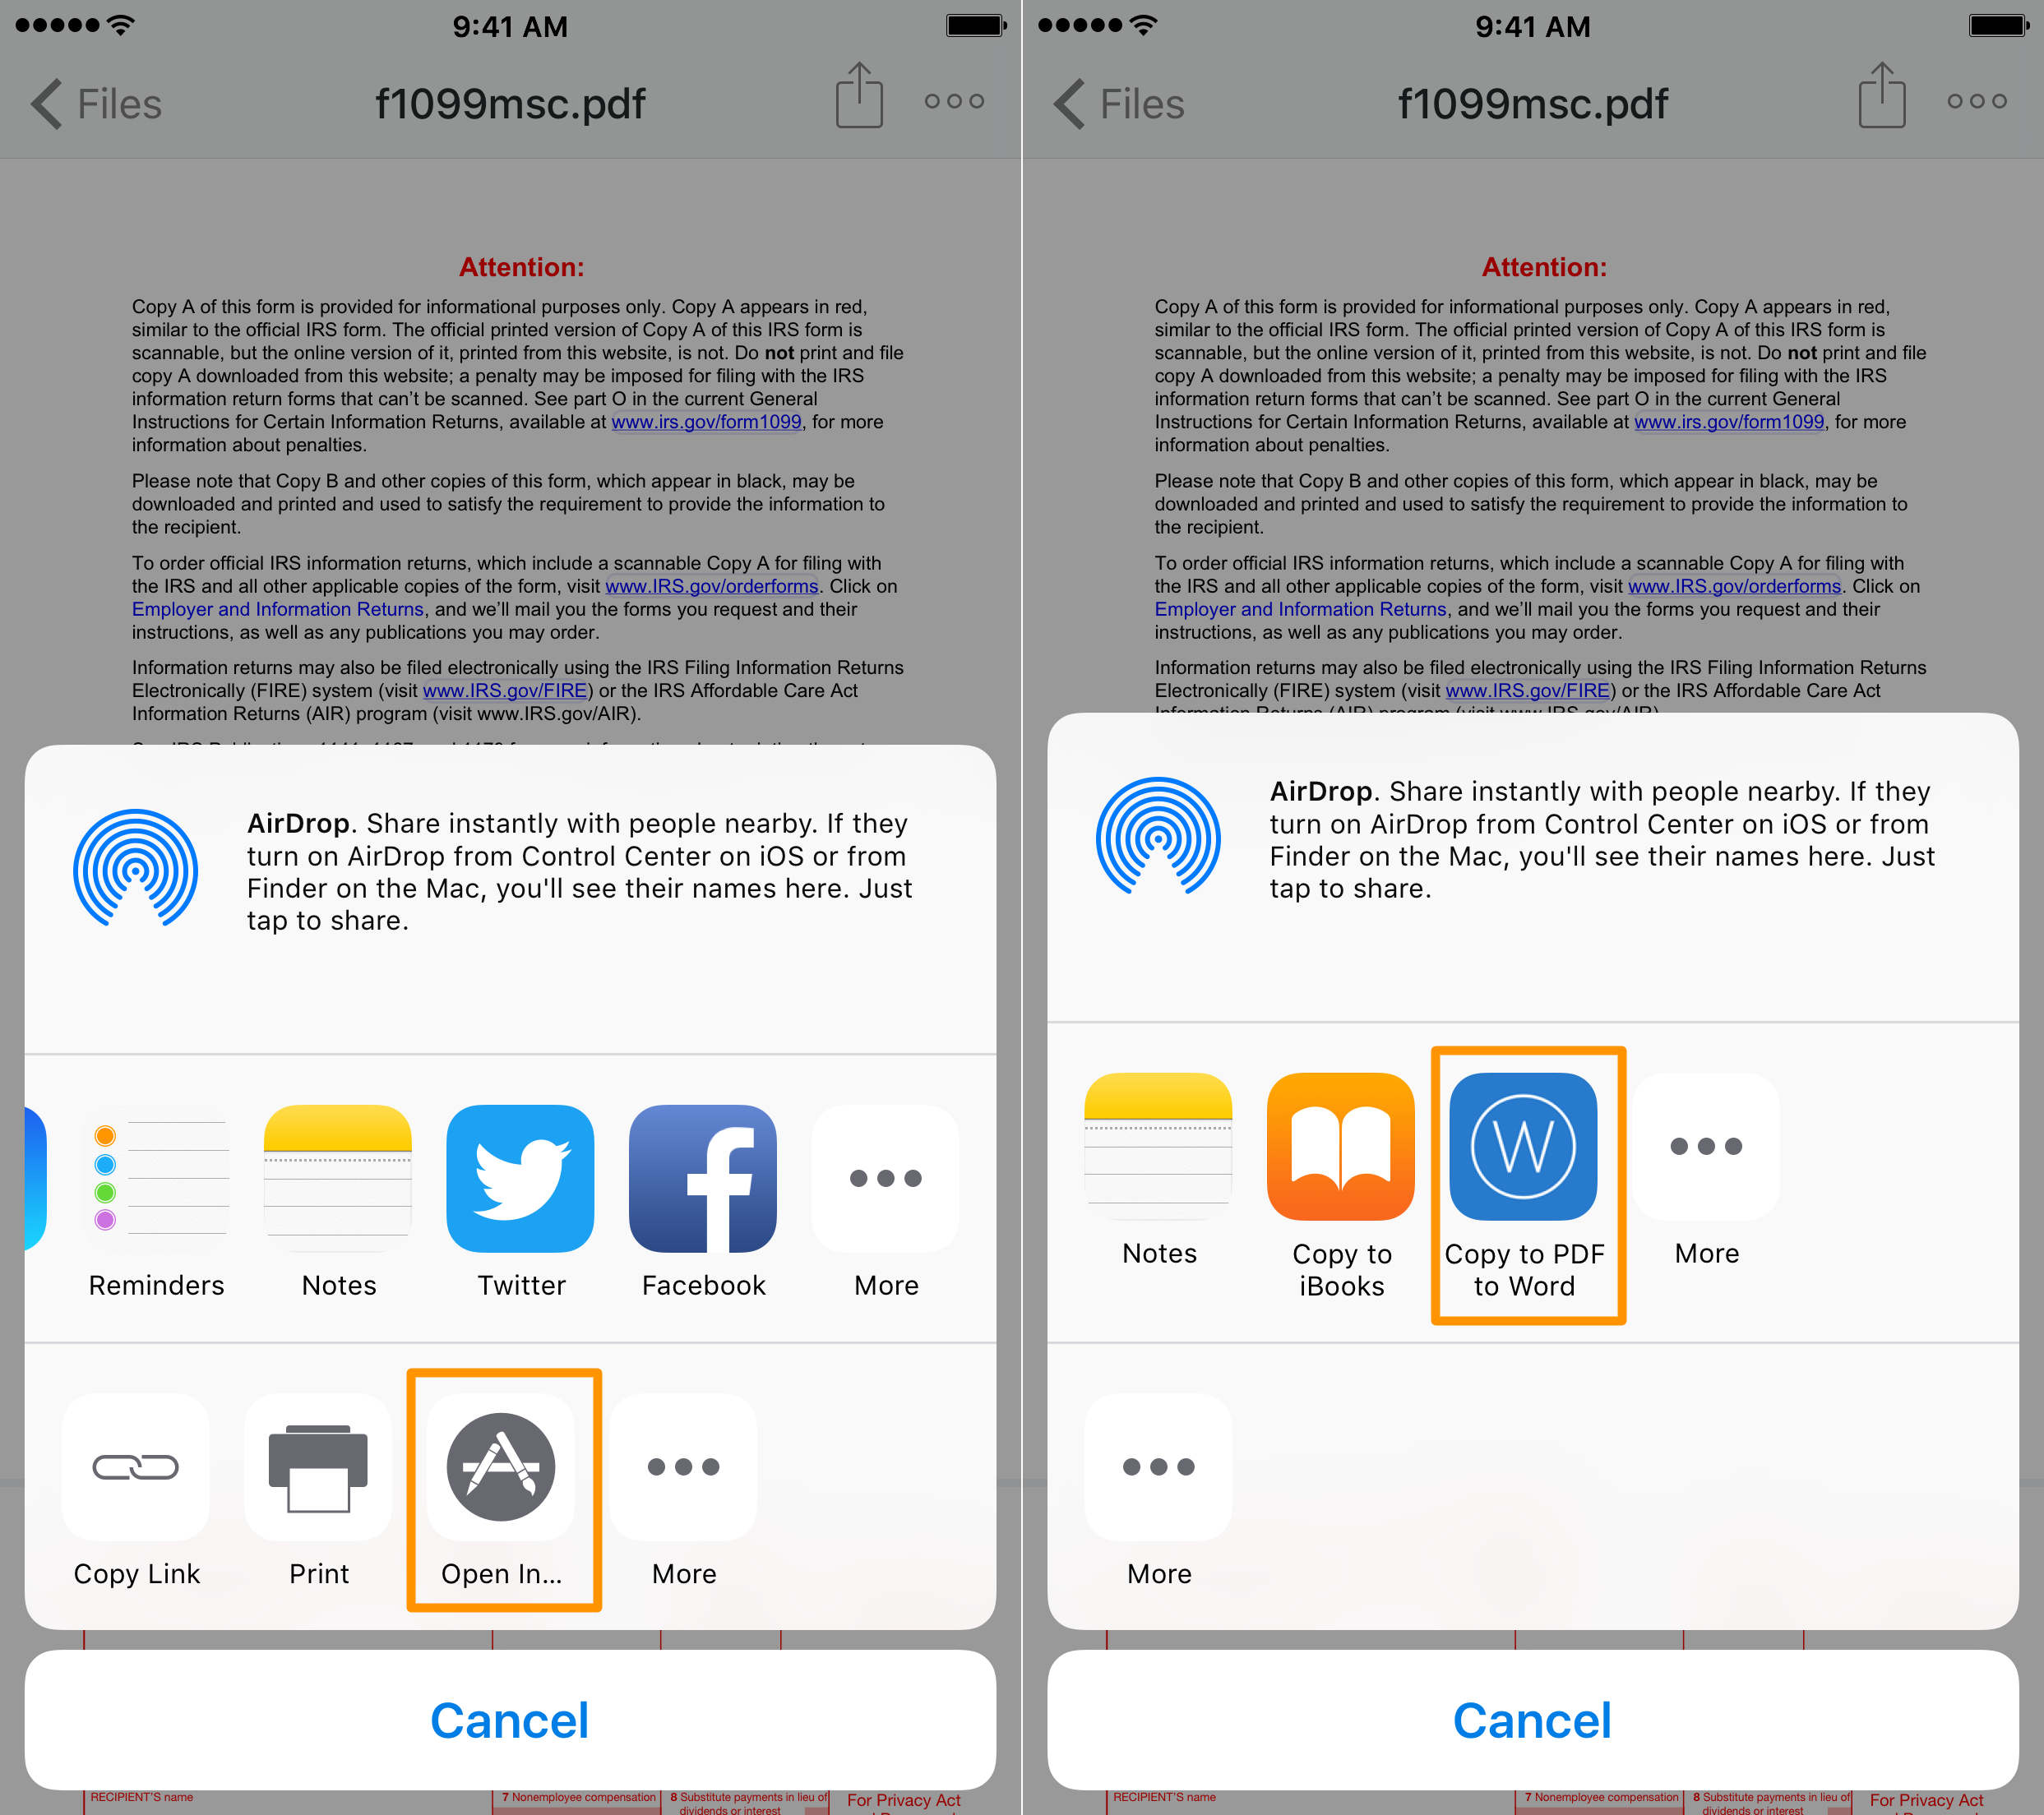 Copy file to convert PDF to Word on iphone